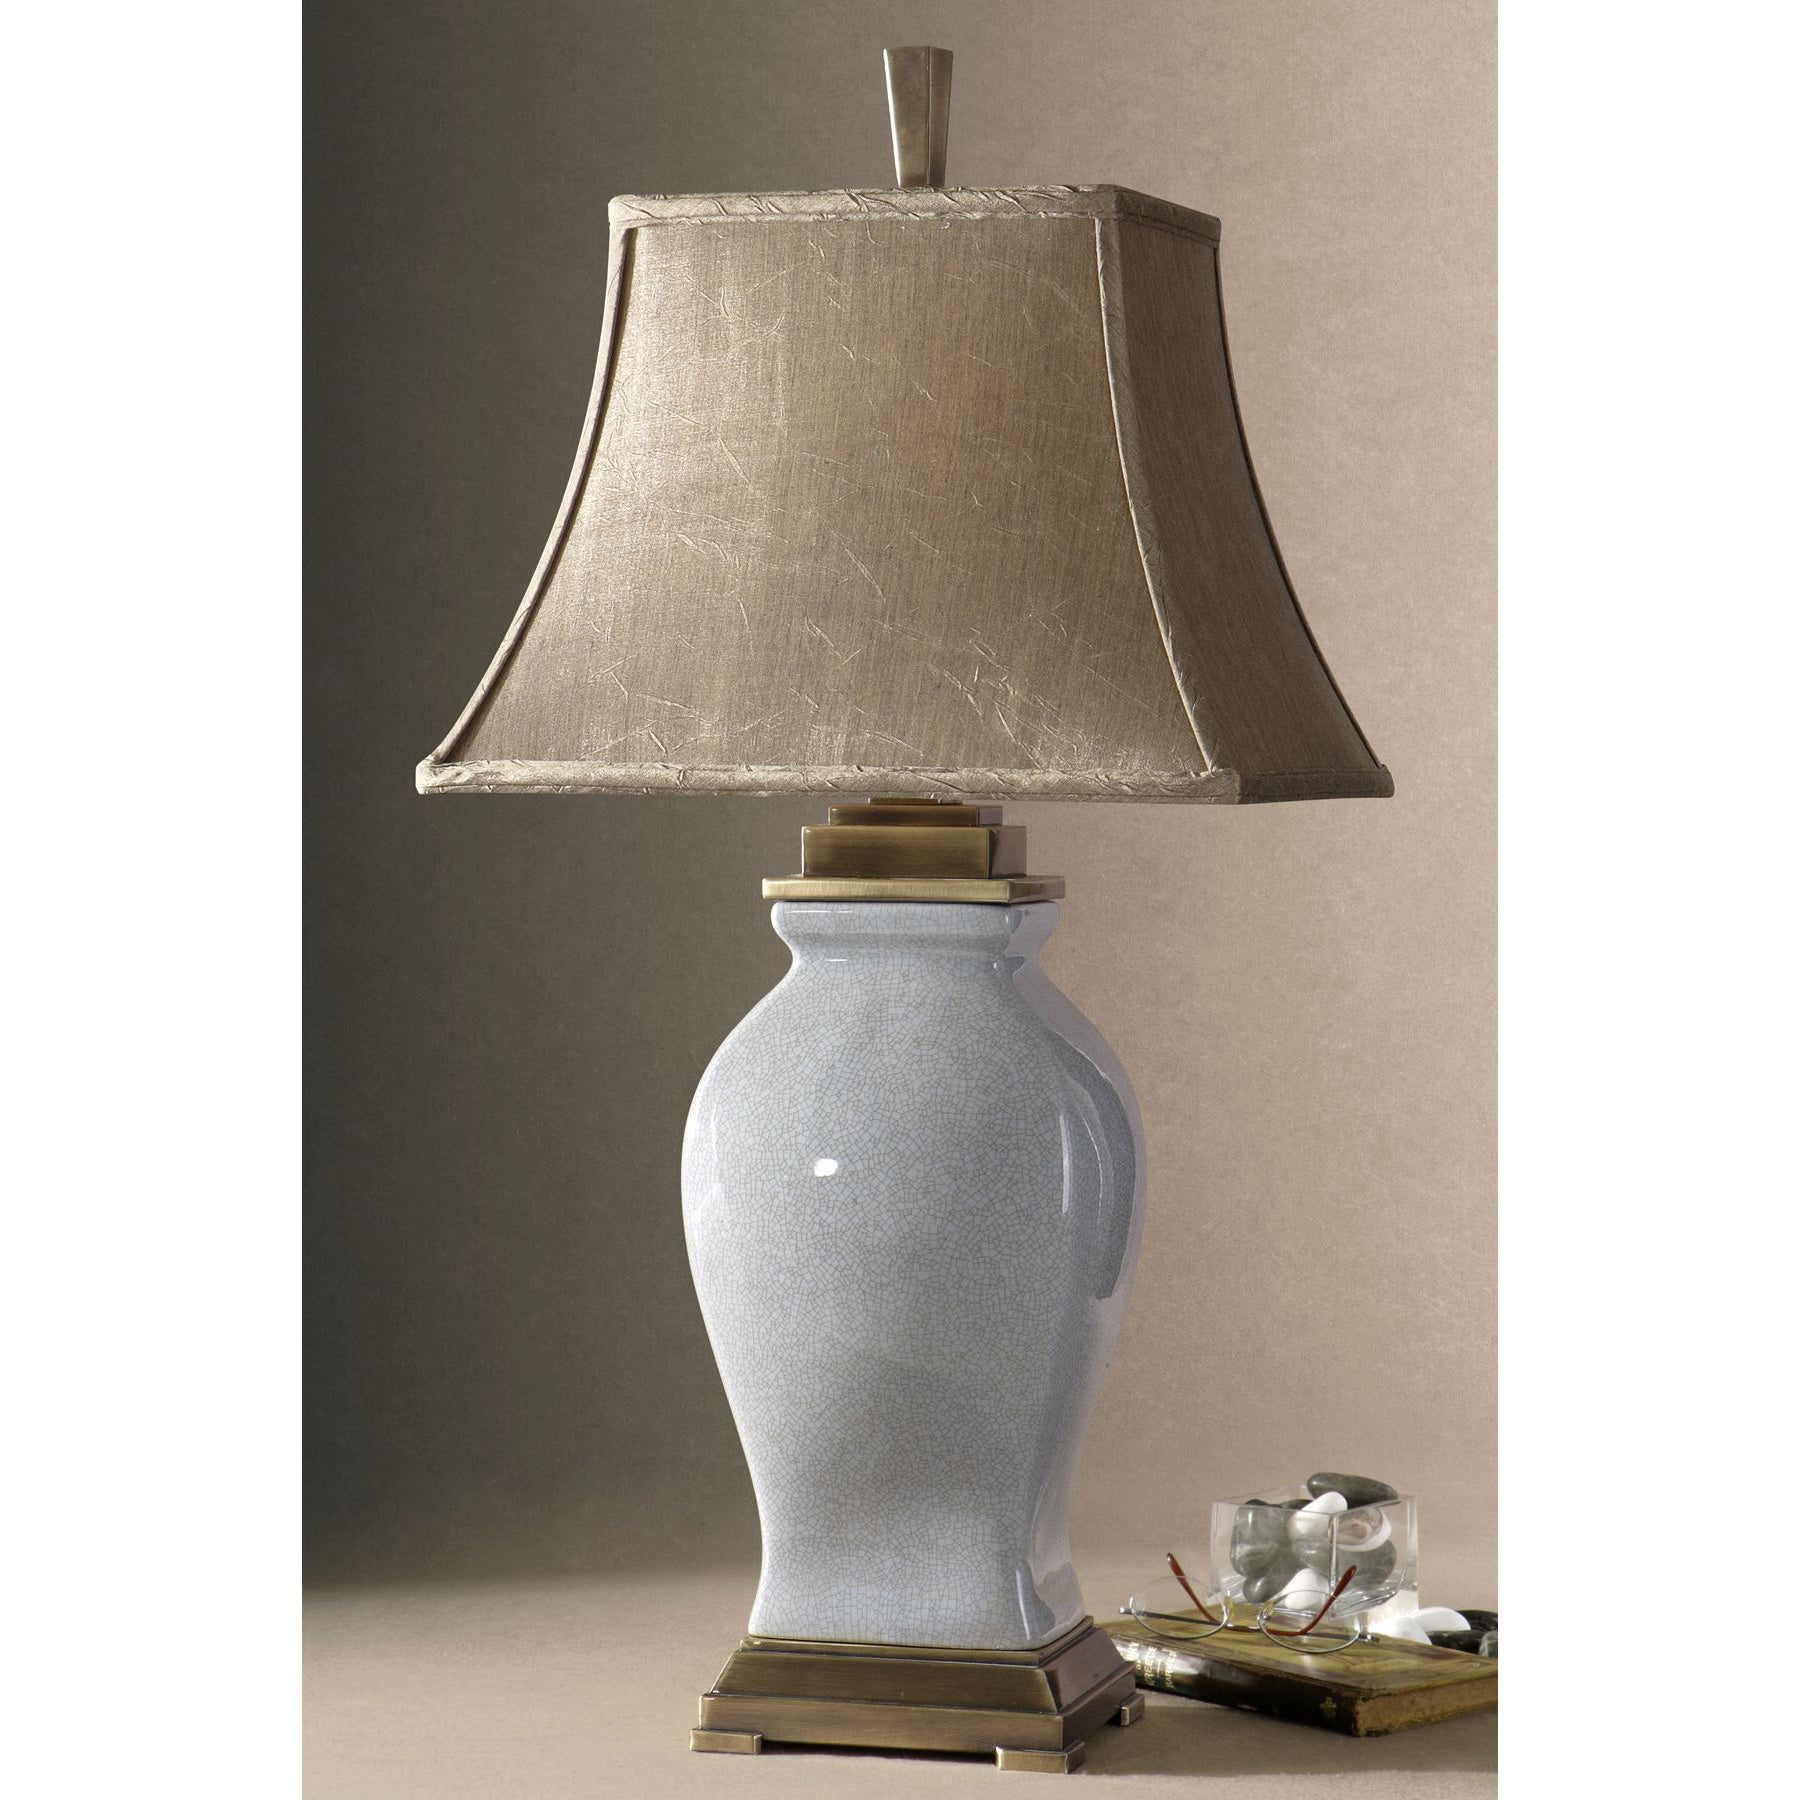 Delicieux Shop Uttermost Rory Sky Blue Porcelain Table Lamp   Free Shipping Today    Overstock   9079661